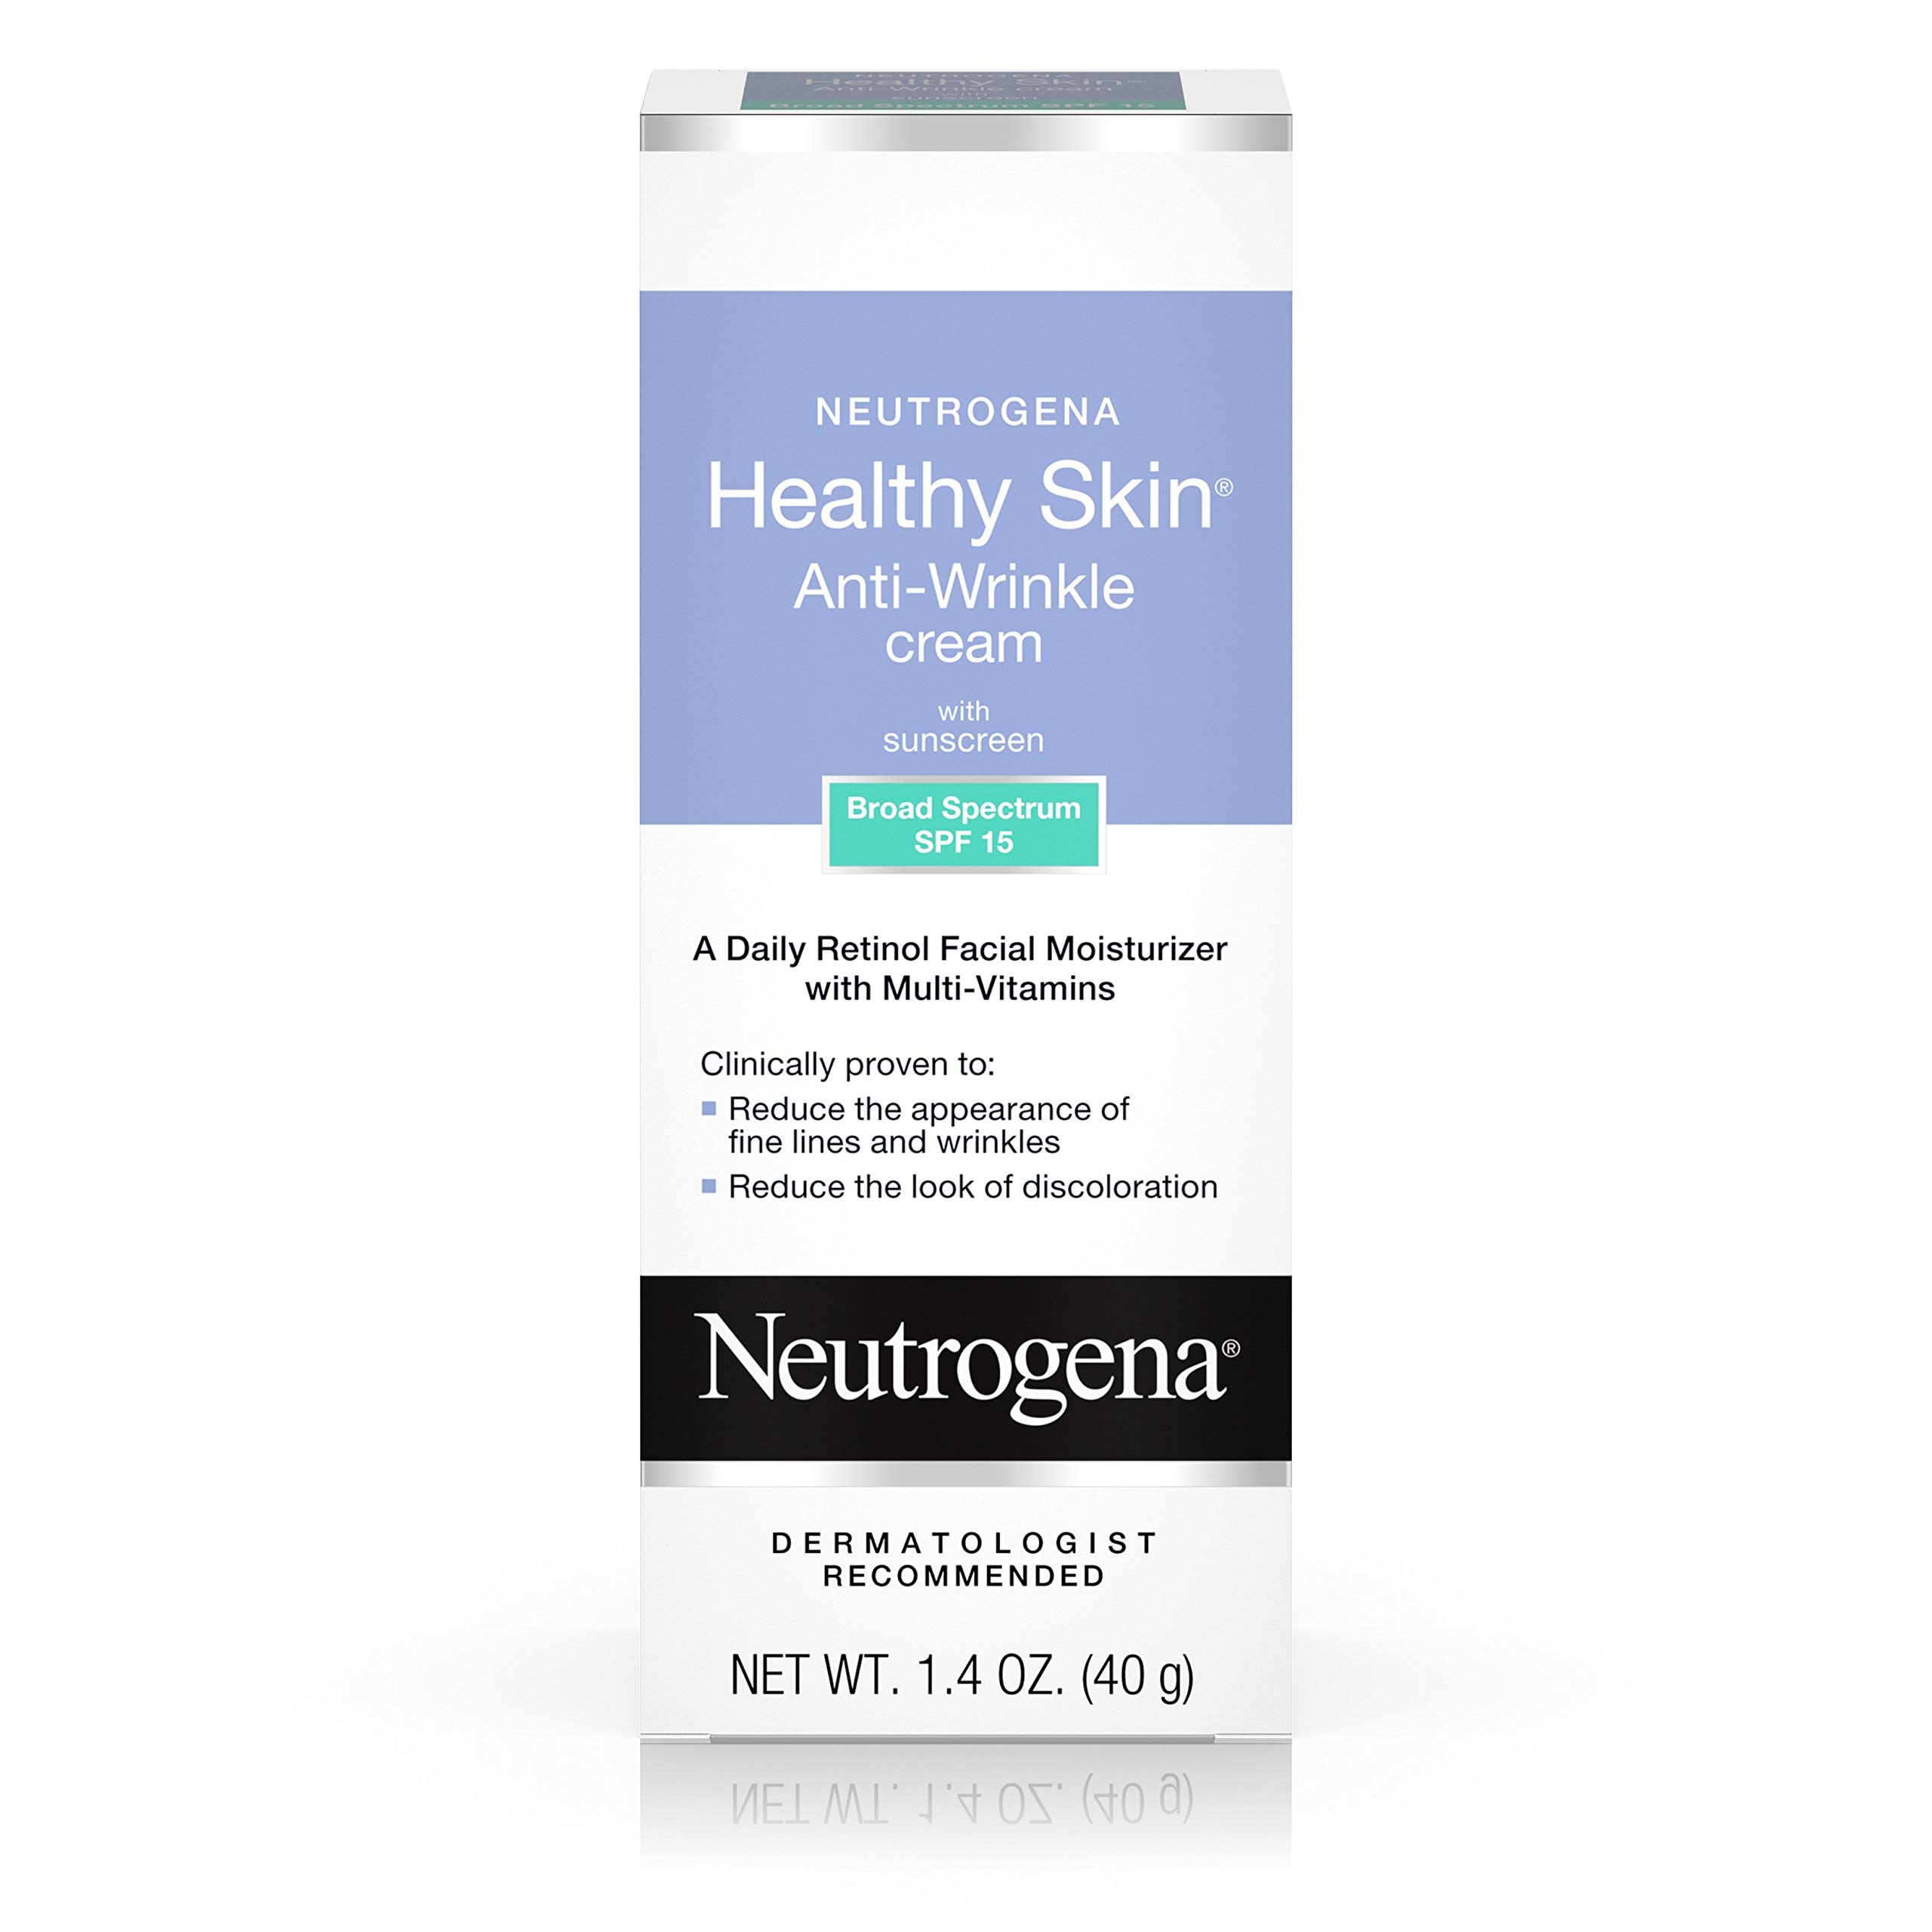 Neutrogena Healthy Skin Anti Wrinkle Retinol & Vitamin E Face & Neck Cream Moisturizer with SPF 15 Sunscreen, Oil-Free - Retinol, Green Tea, Glycerin, Vitamin E, Vitamin A & Vitamin B5, 1.4 oz by Neutrogena